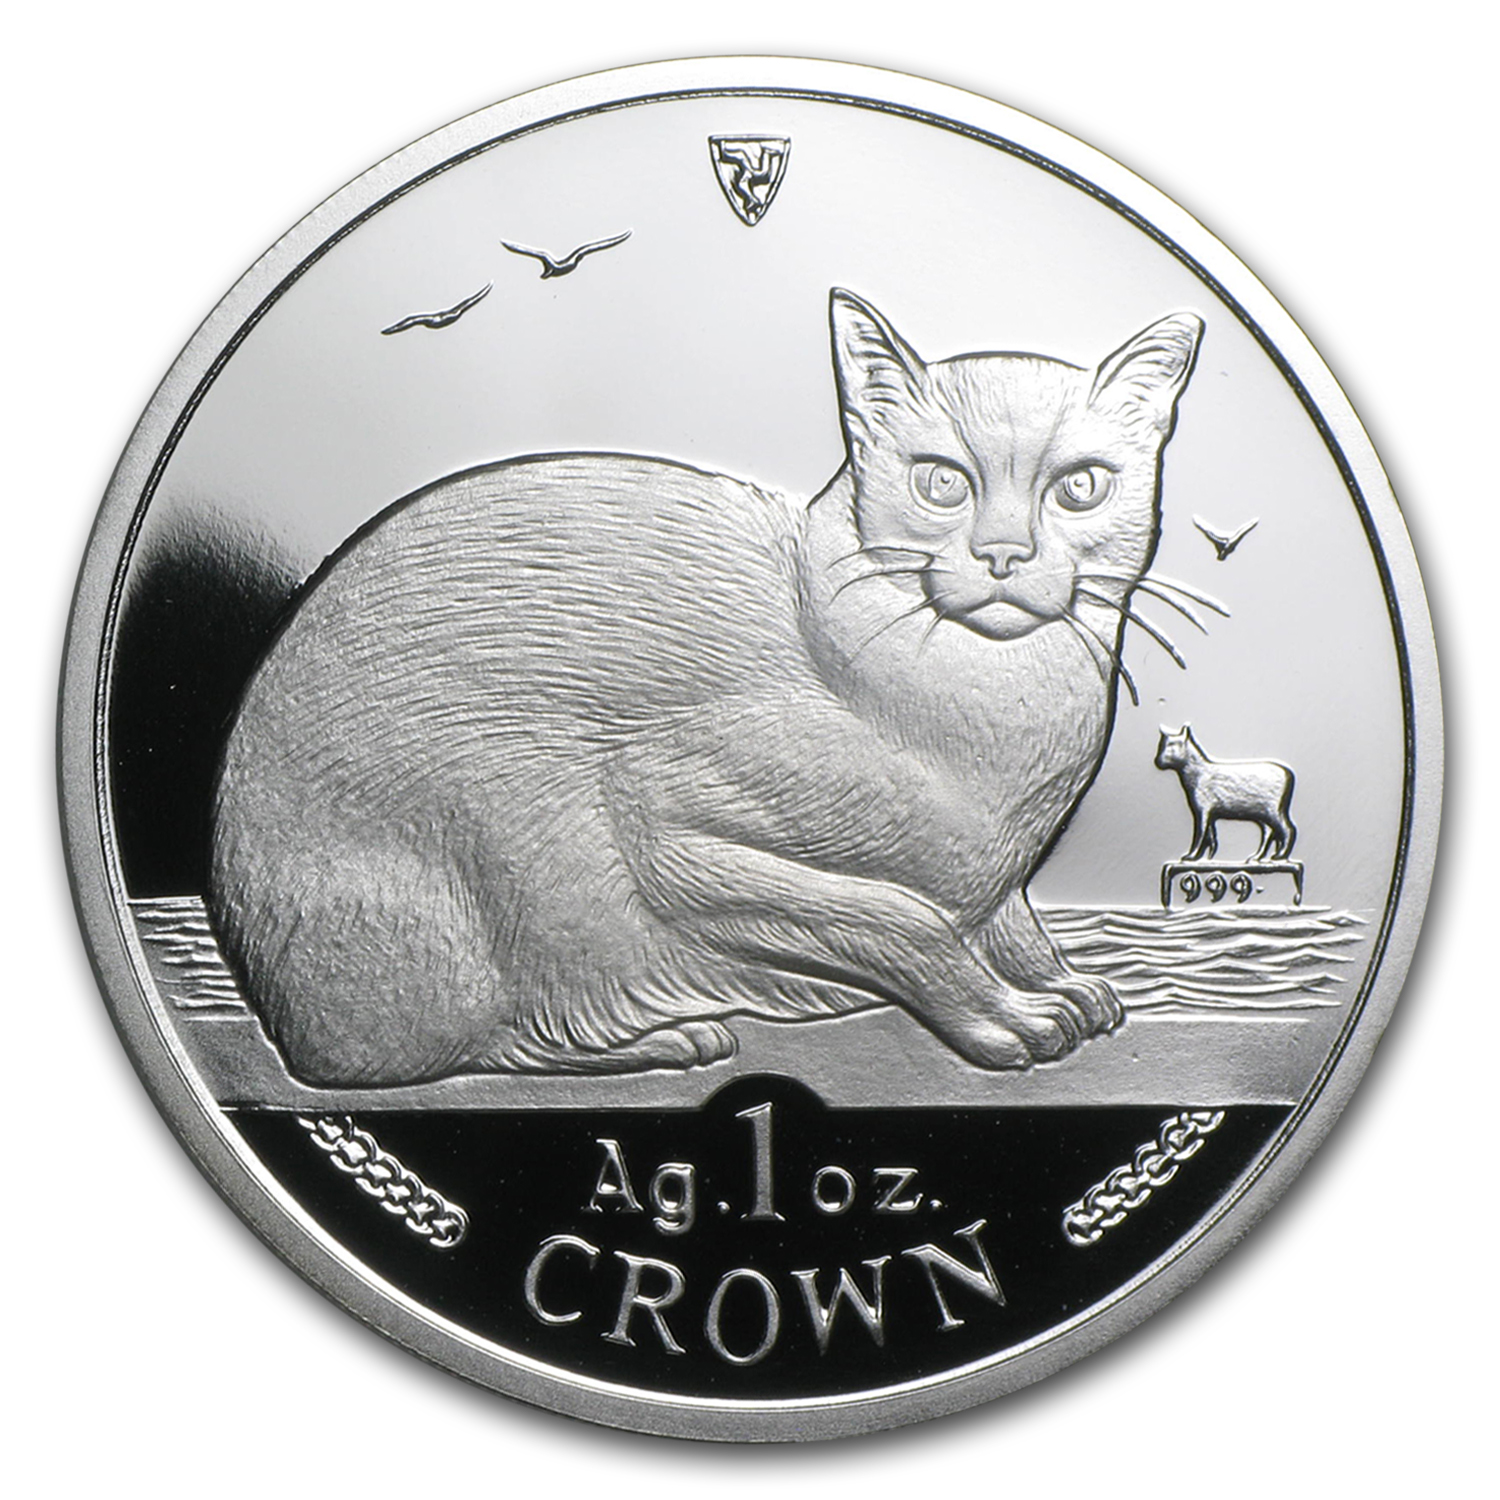 1996 Isle of Man Silver 1 Crown Burmese Cat Proof